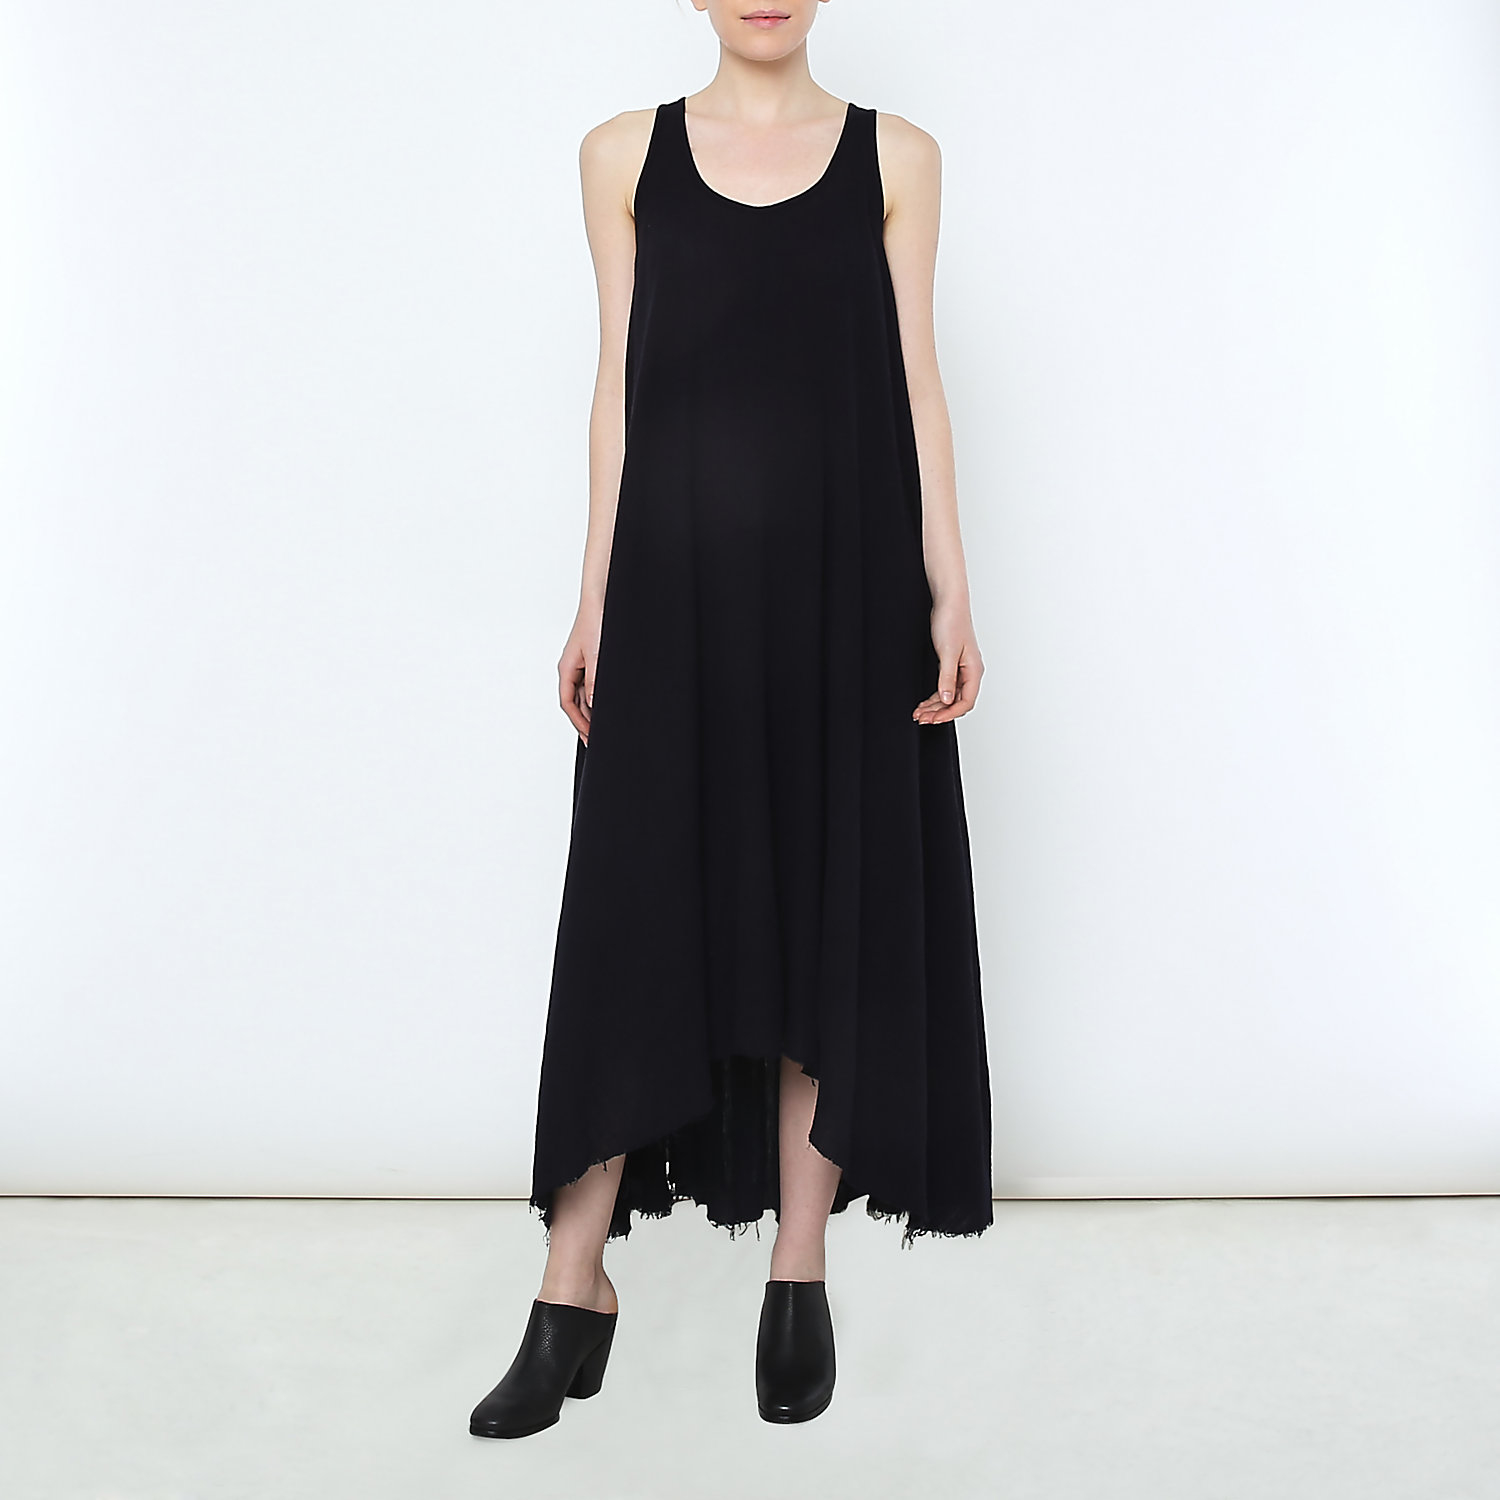 Black Crane Gauze Dress - Simple Guide To Choosing